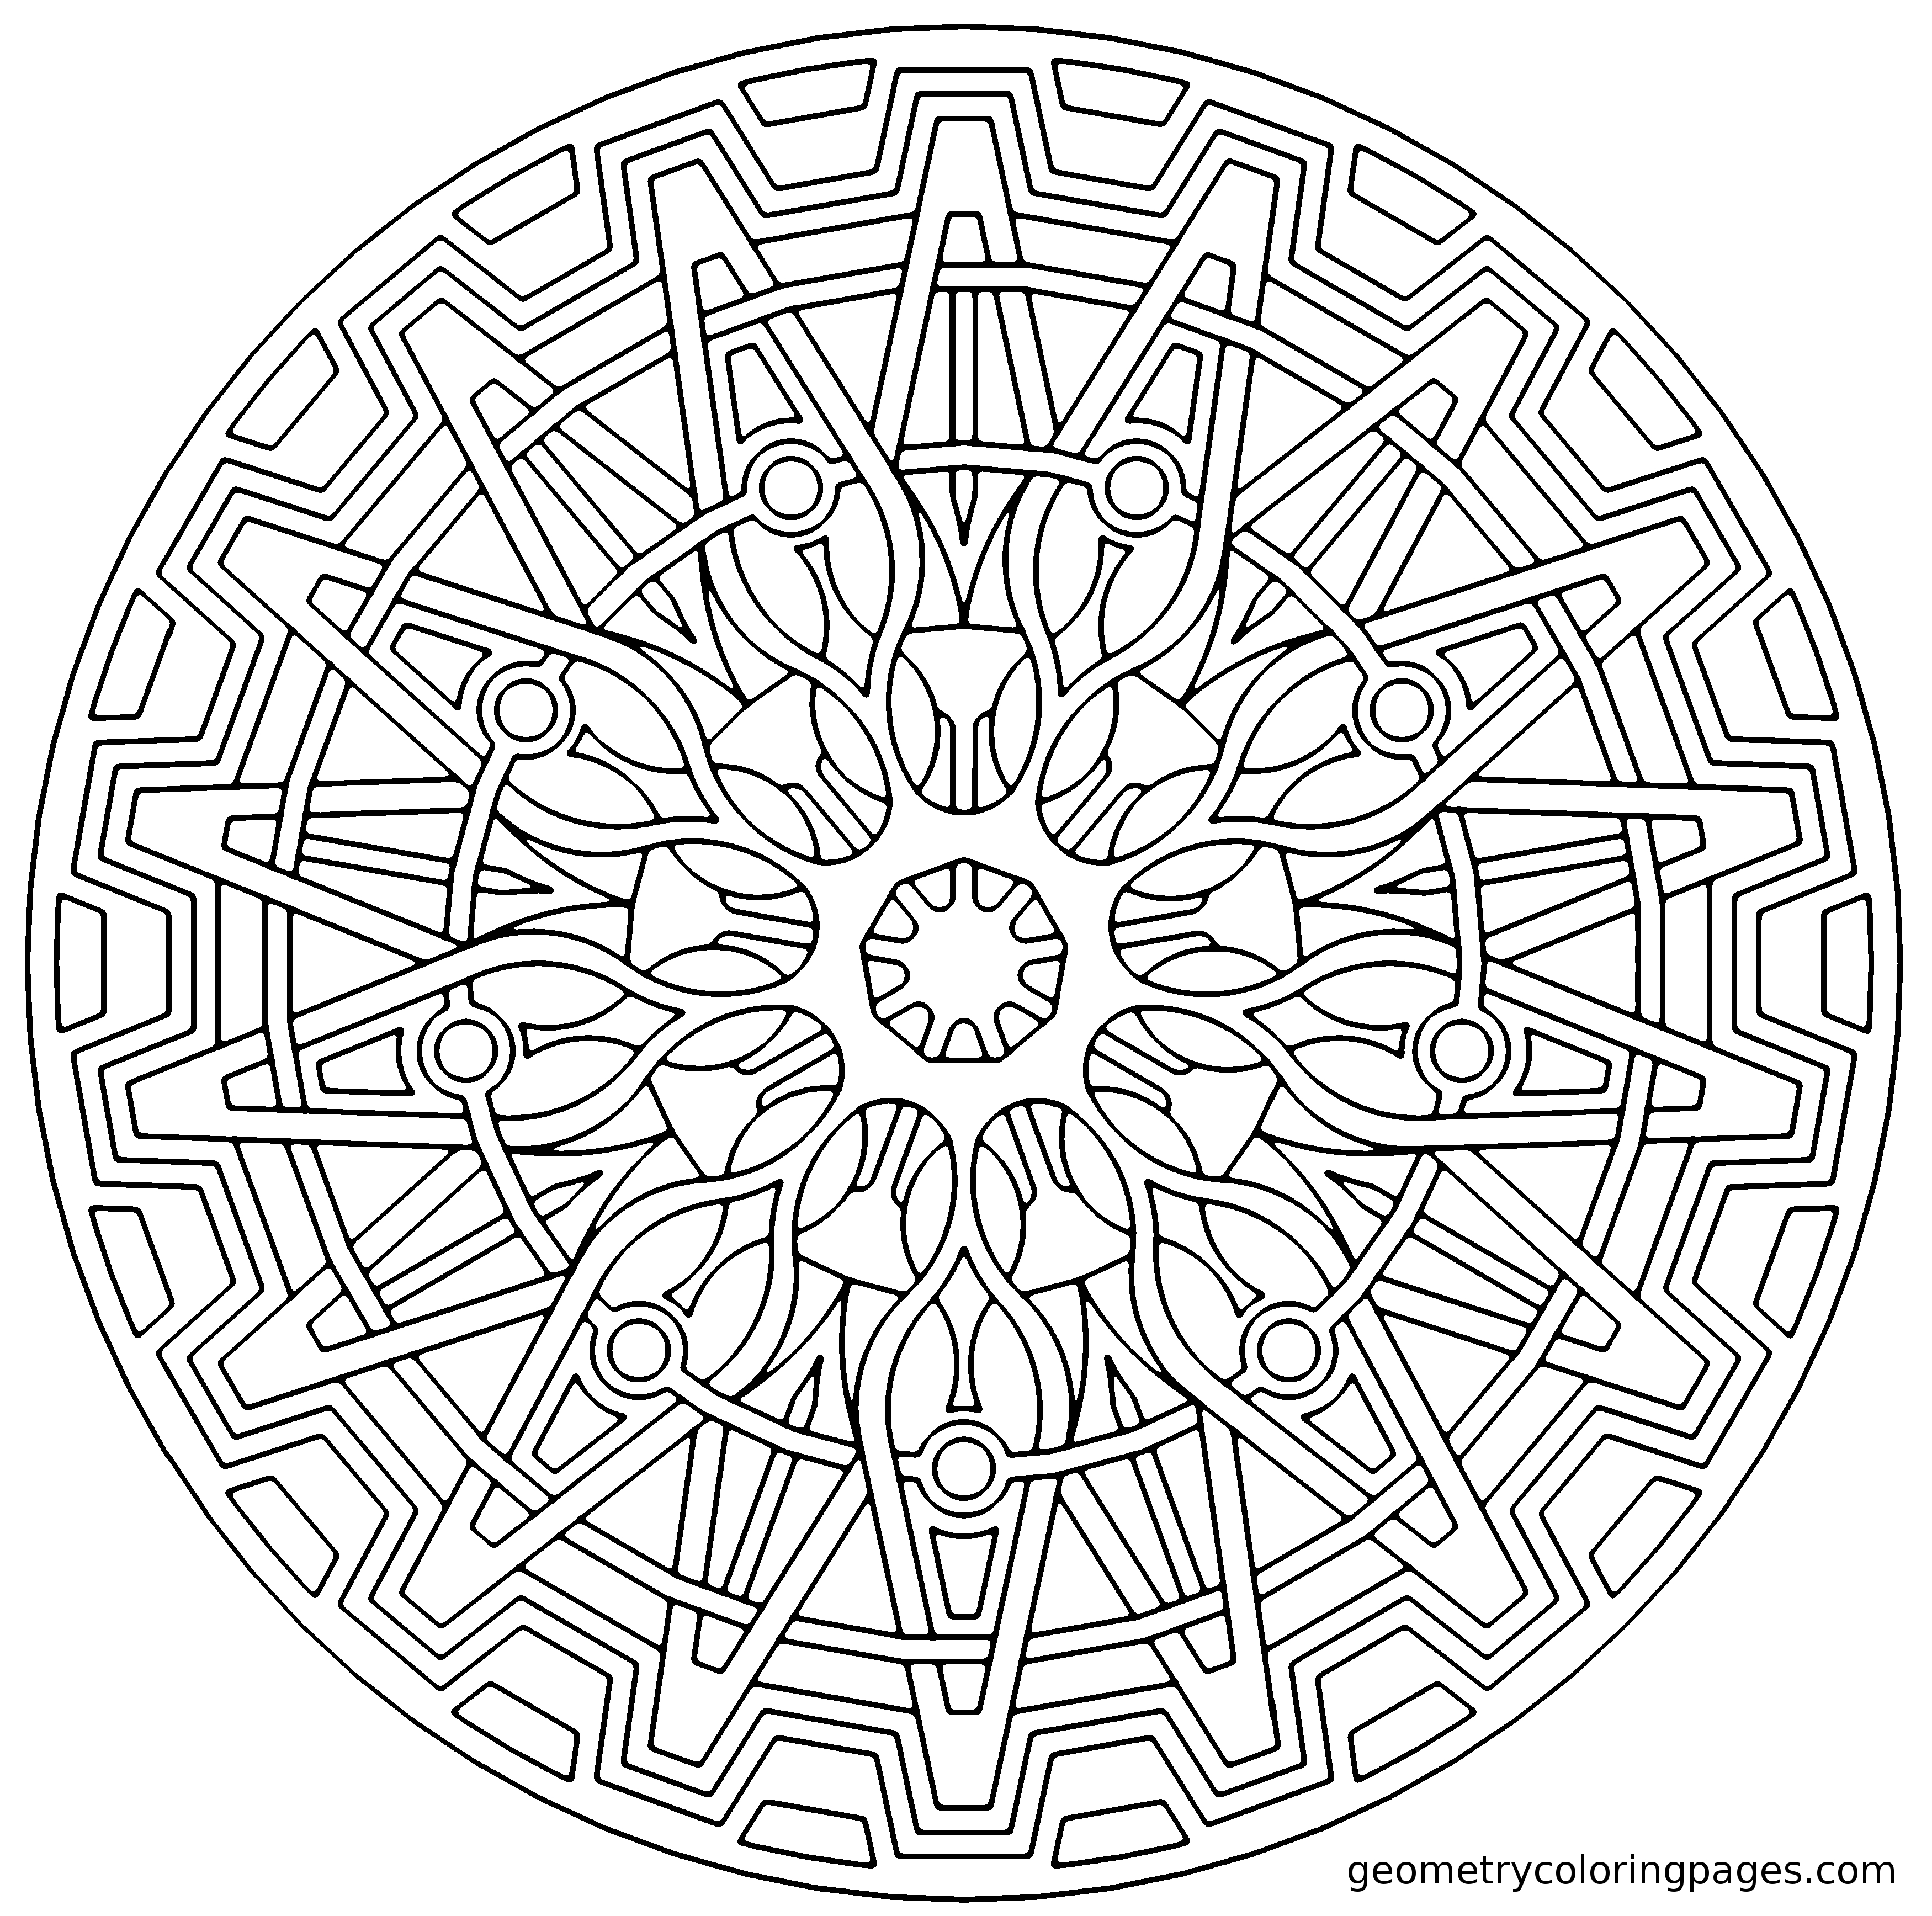 middle east map coloring page middle east coloring download middle east coloring for coloring middle east page map